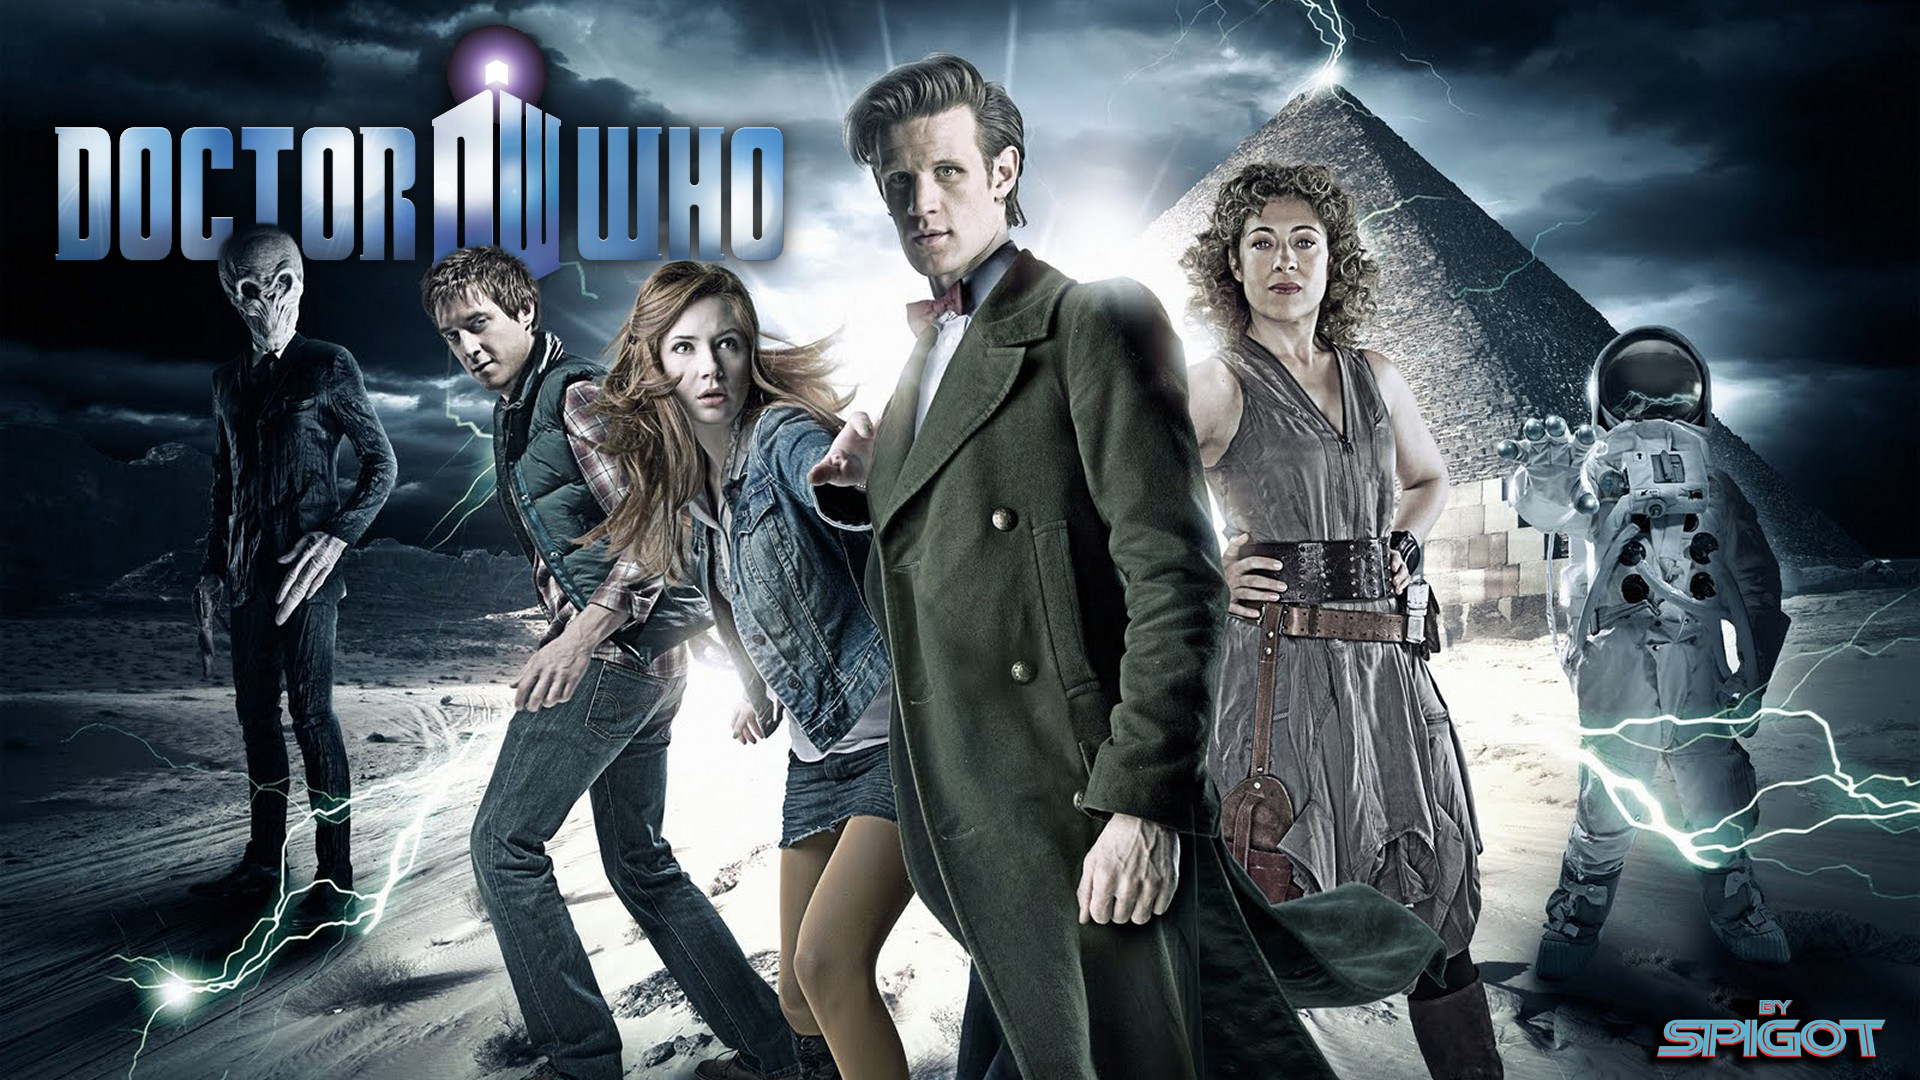 Watch Dr. Who Season 5 online | Watch Drama Online | Animeflavor.